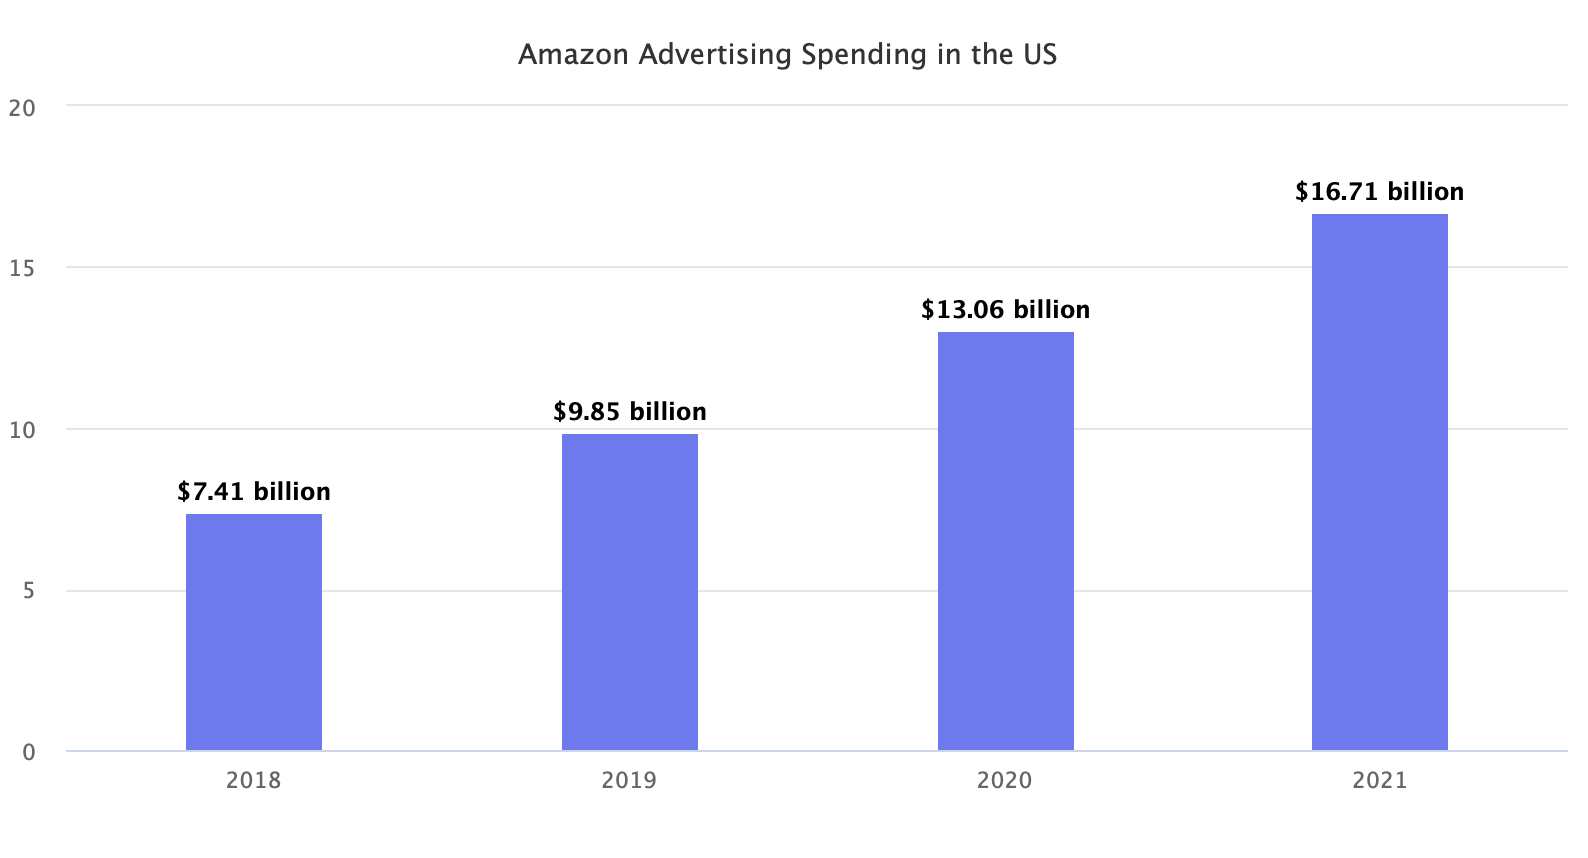 Amazon Advertising Spending in the US